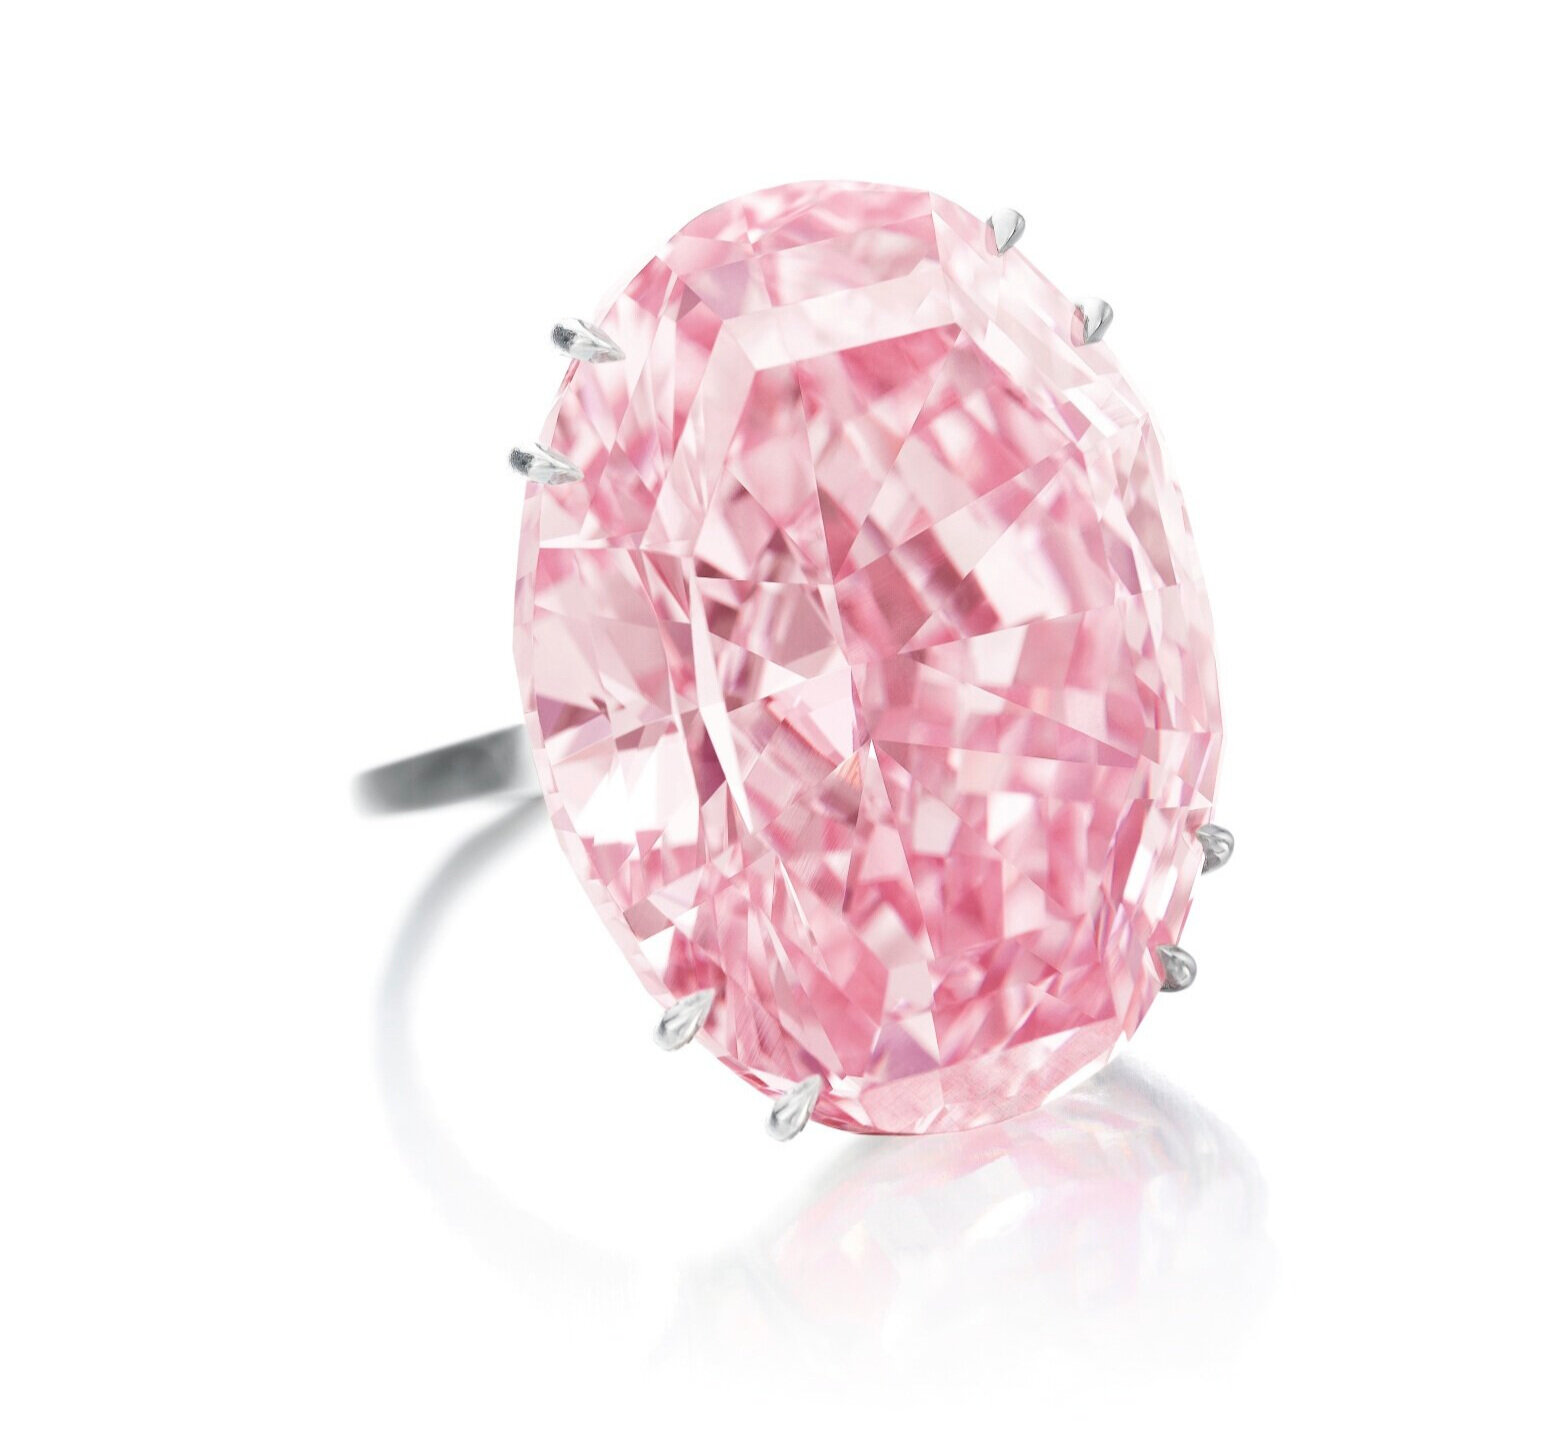 The 59.60-carat oval mixed-cut Fancy Vivid Pink Internally Flawless diamond - Photo: courtesy of Sothebys